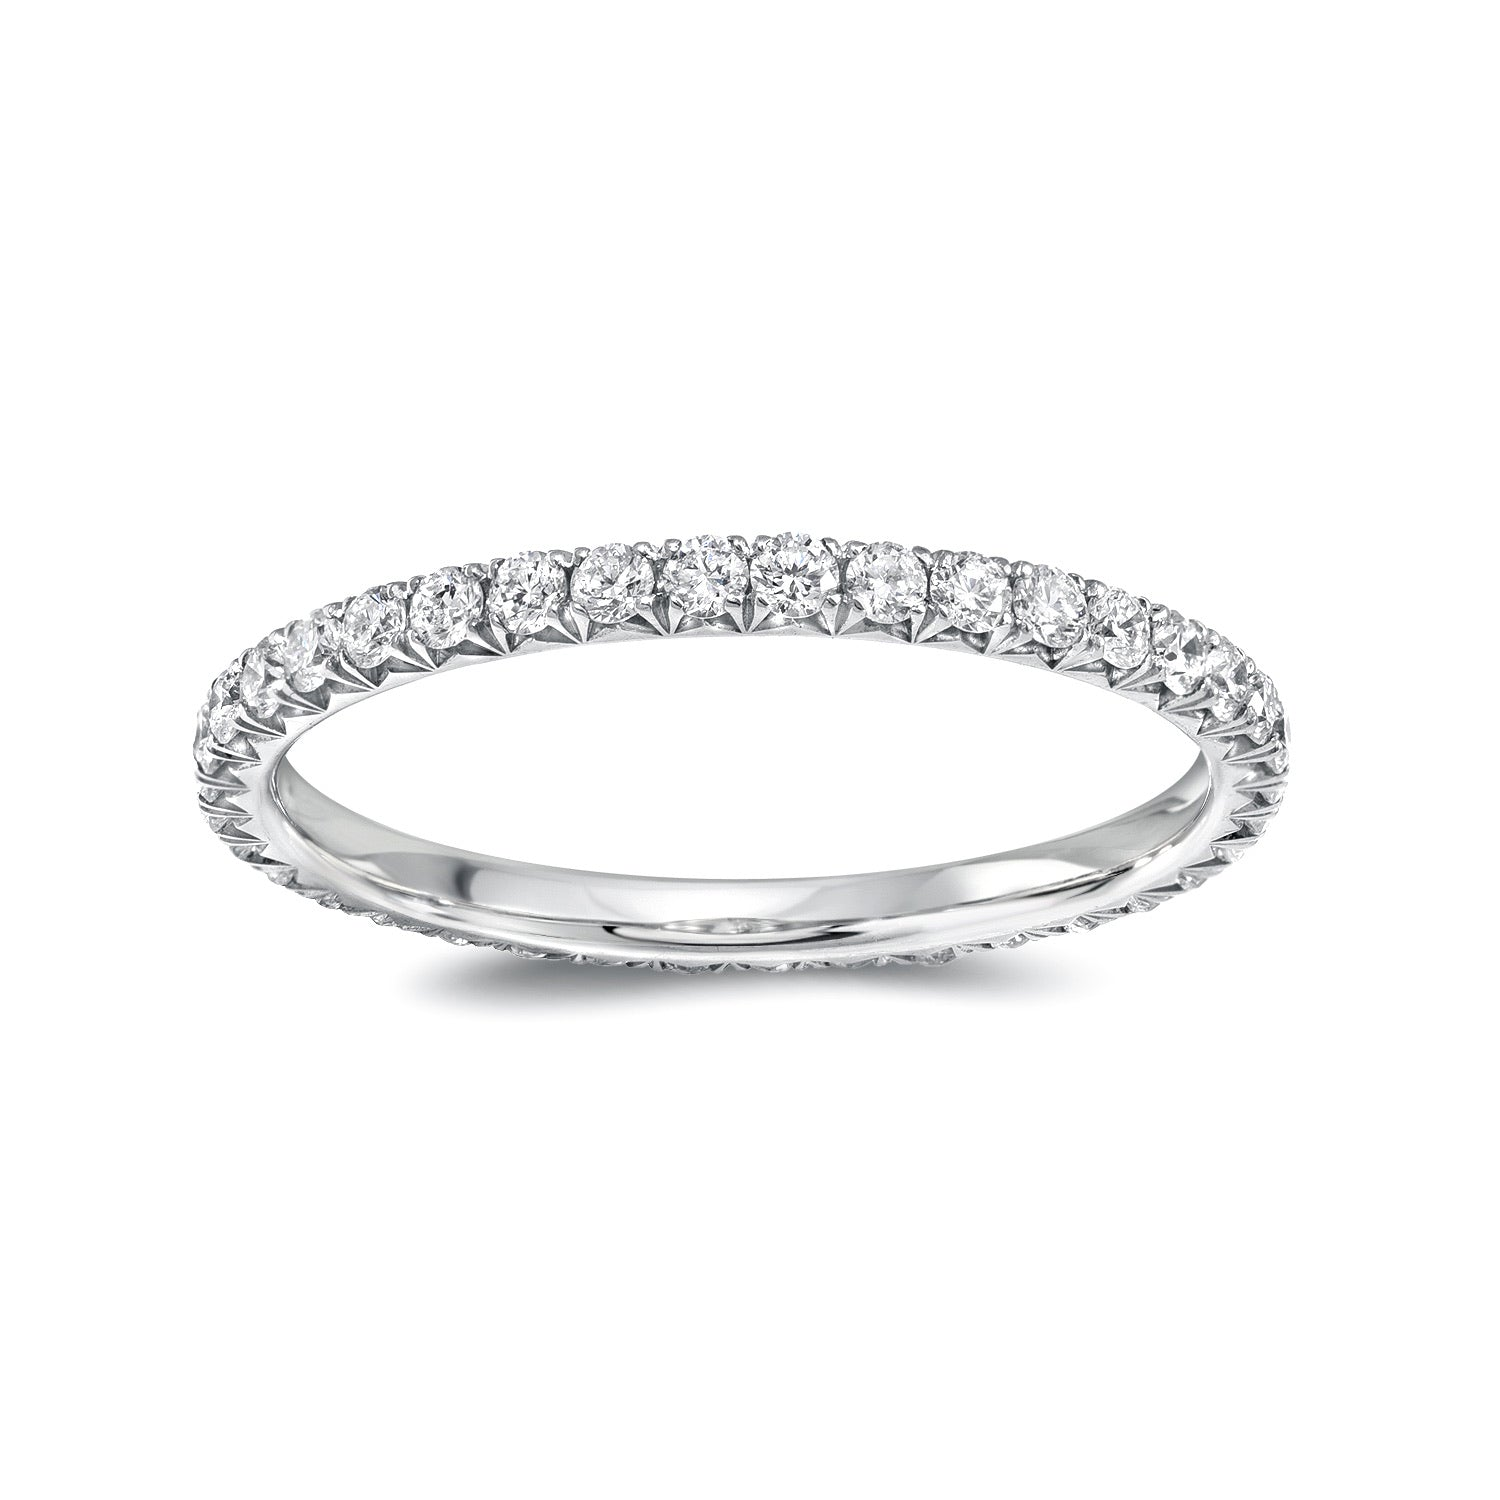 Stackable rings, eternity bands Stackable rings, eternity bands